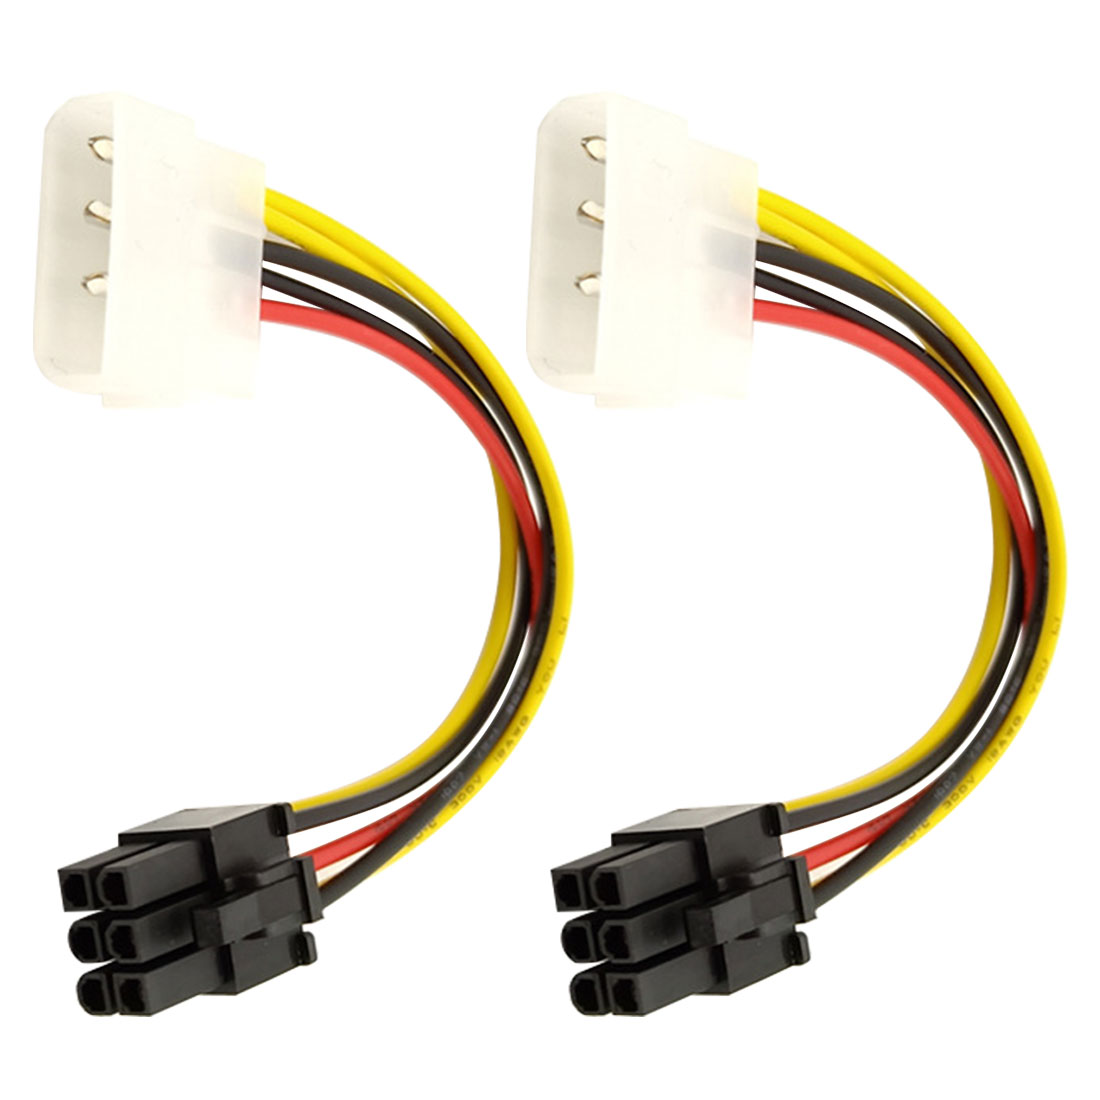 Hohe Qualität <font><b>4</b></font> <font><b>Pin</b></font> <font><b>Molex</b></font> zu <font><b>6</b></font> <font><b>Pin</b></font> <font><b>PCI</b></font>-<font><b>Express</b></font> PCIE Video Karte Power Converter Adapter Kabel 20 cm image